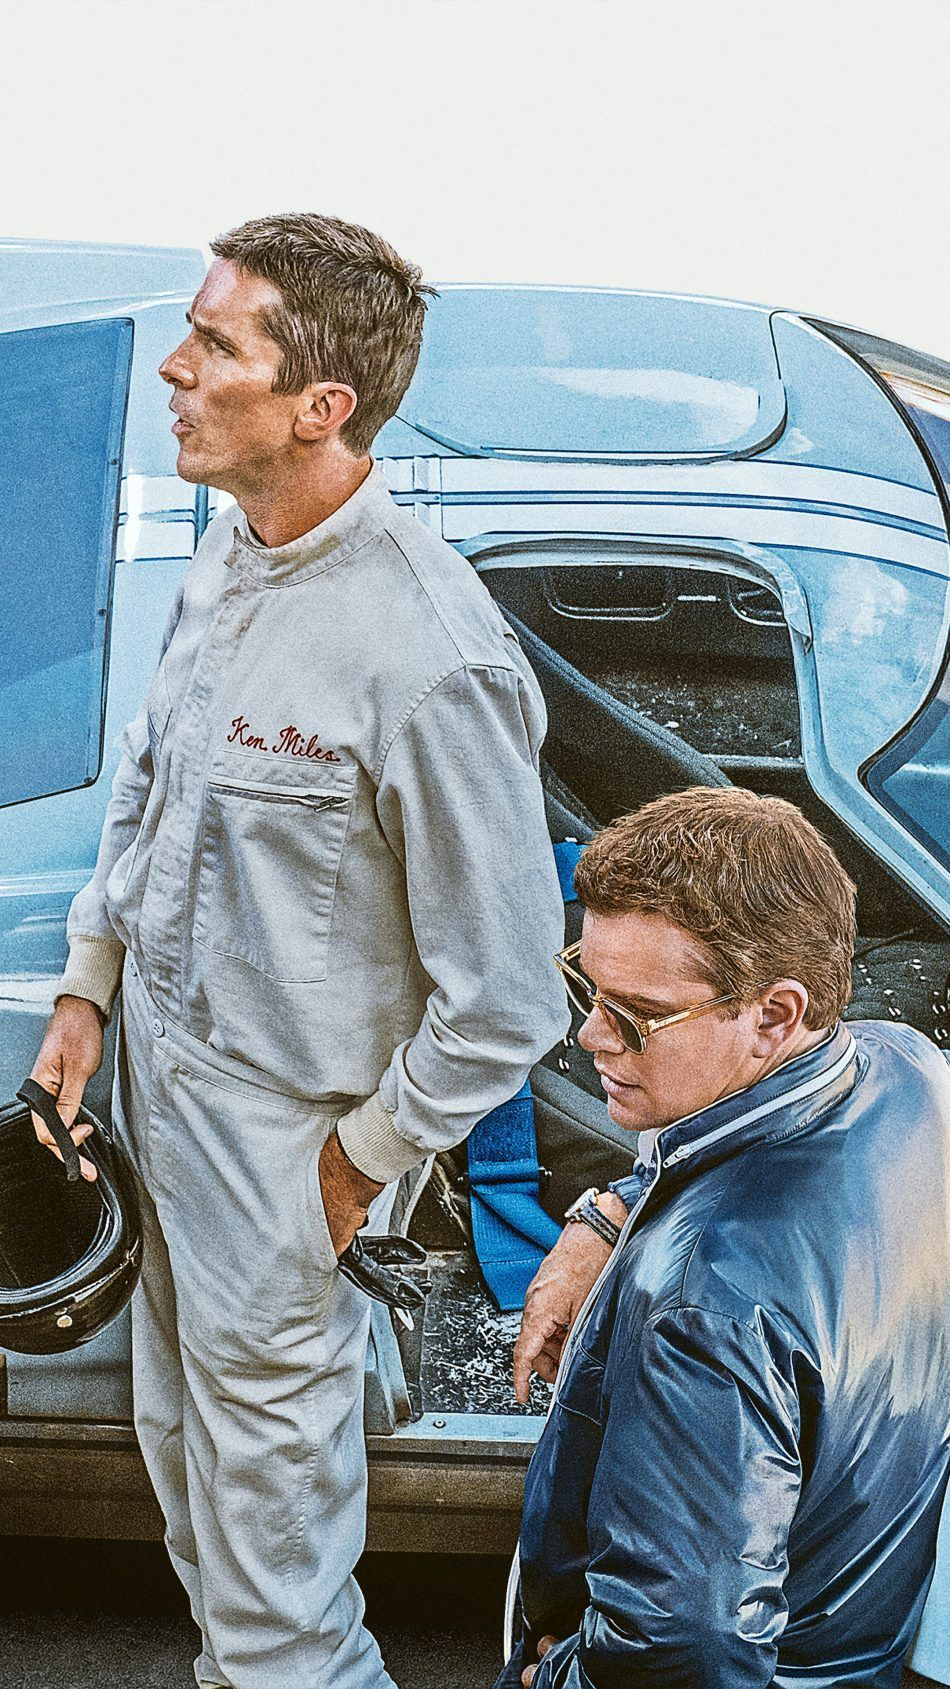 Christian Bale Matt Damon In Ford V Ferrari 2019 Free 4k Ultra